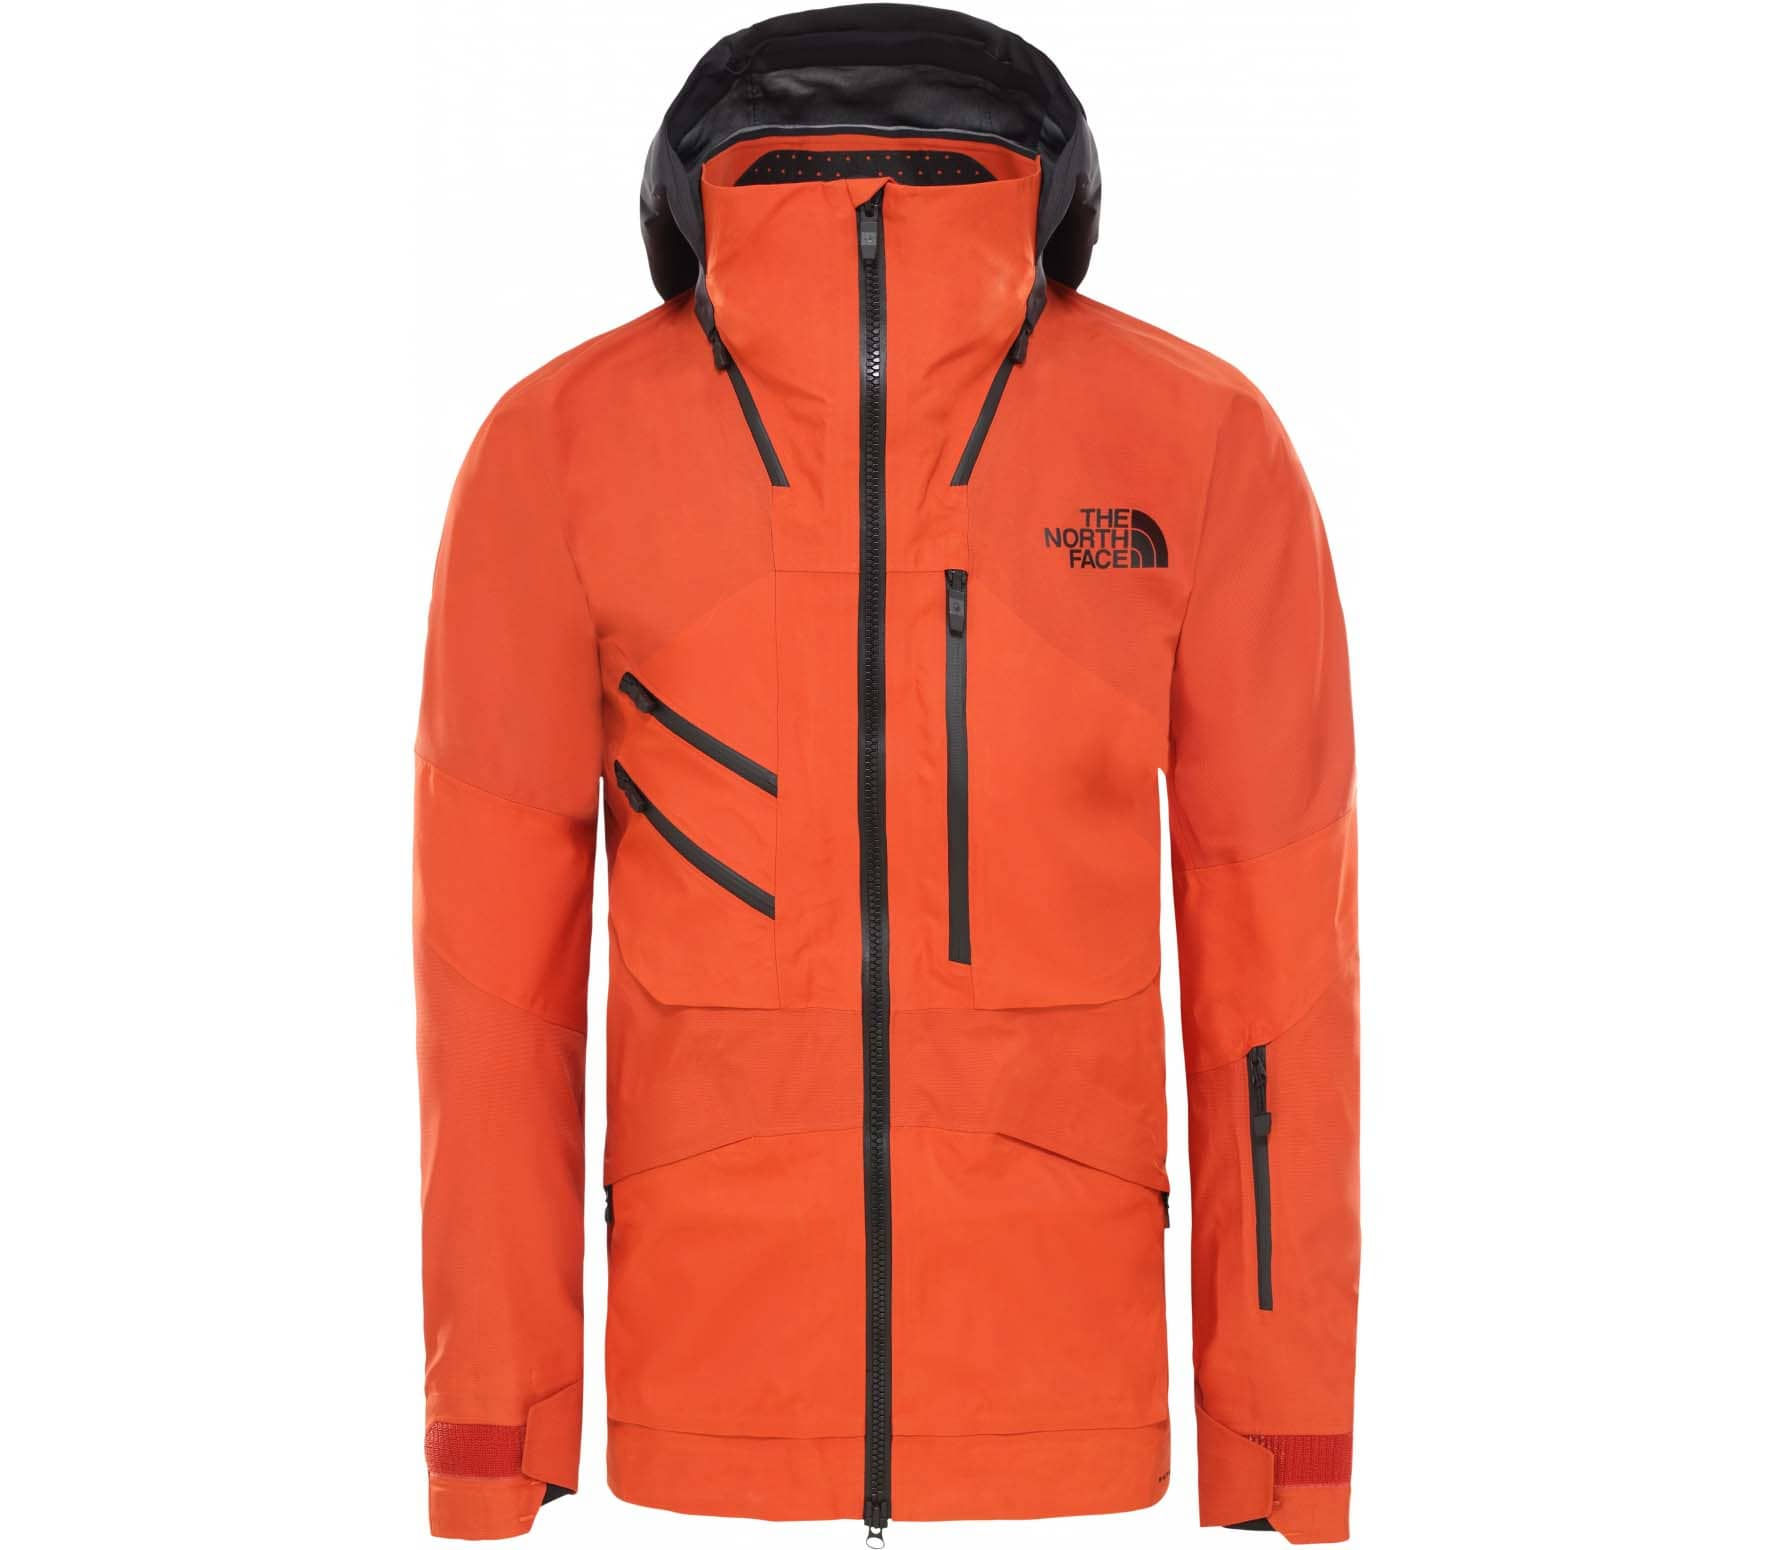 The North Face Brigandine Herren Skijacke (orange) 577,90 €